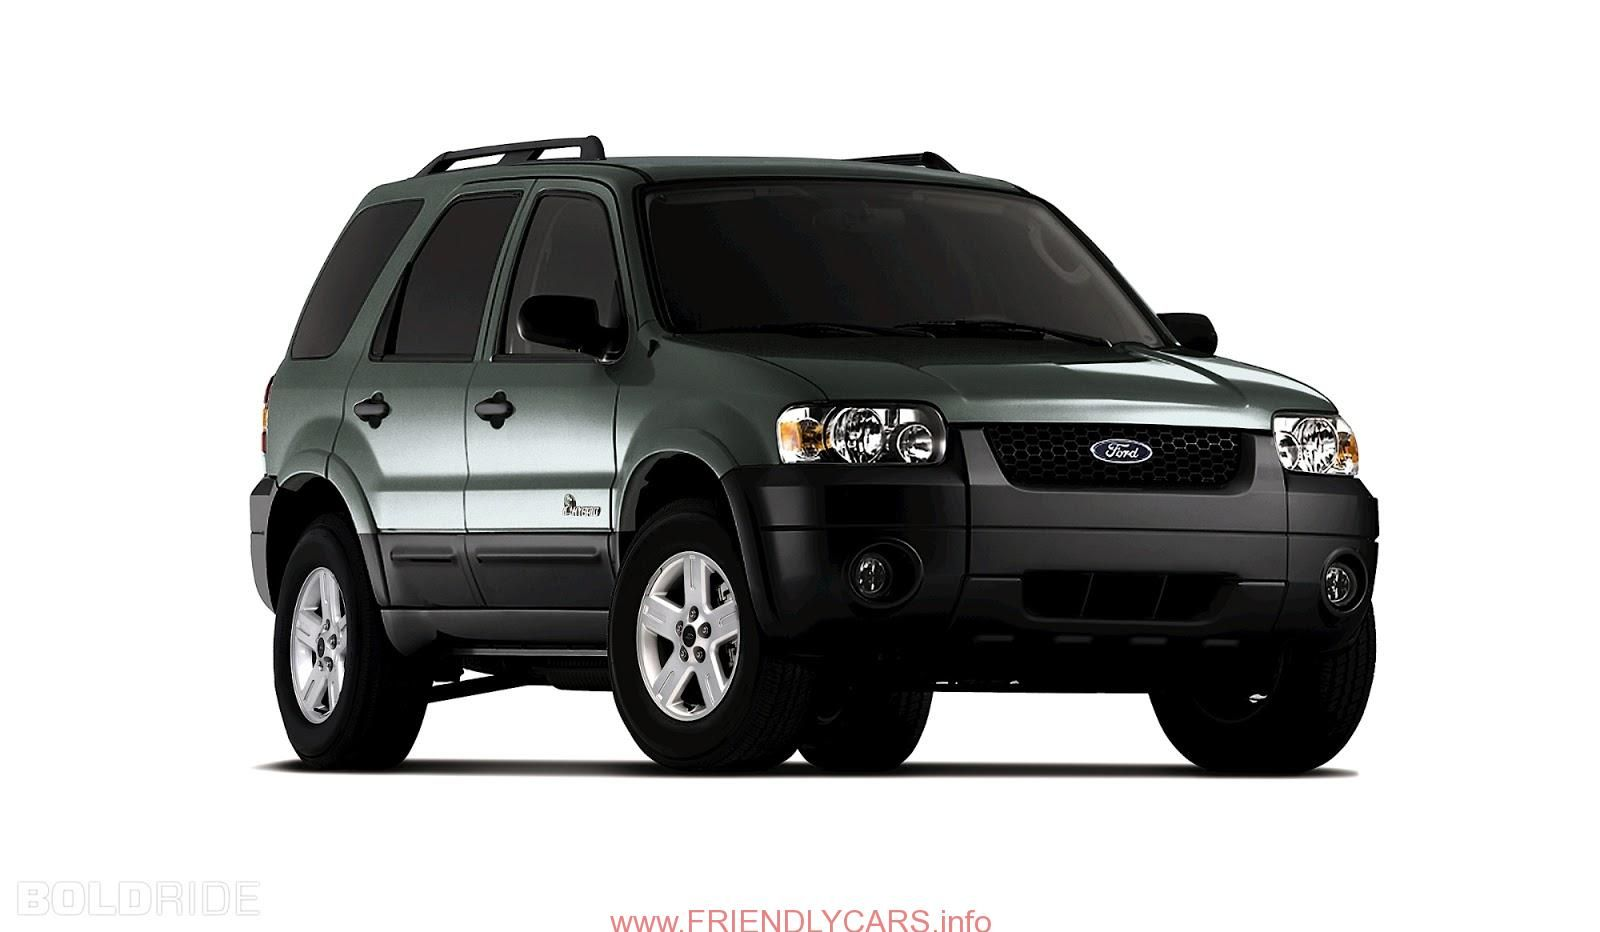 Awesome 2005 Ford Escape Interior Car Images Hd The 2002 2005 Ford